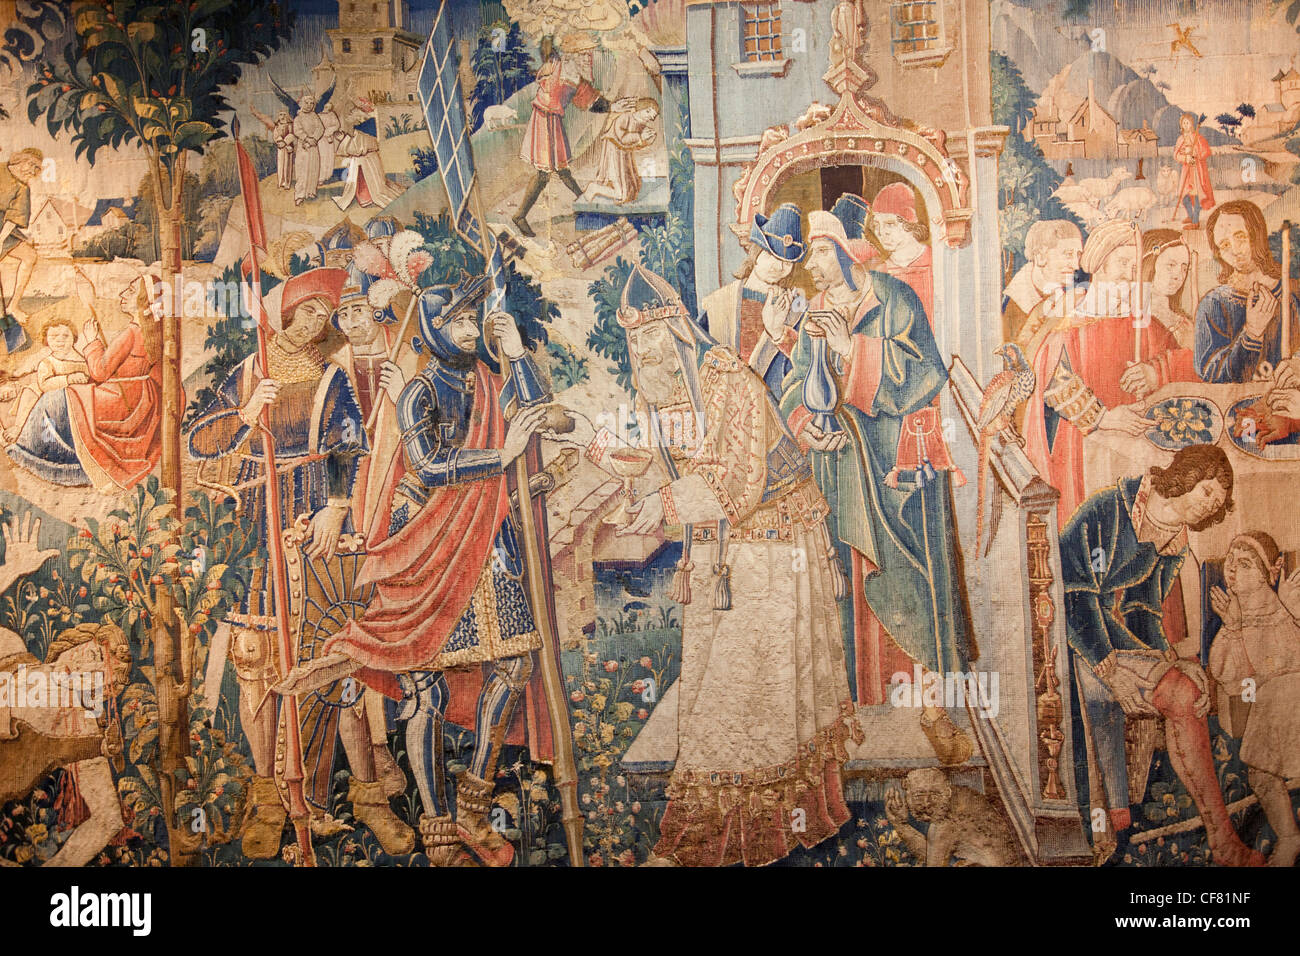 Europe, France, Loire Valley, Loire, Langeais Castle, Chateau de Langeais, Chateau, Castle, Castles, Tapestry, Tapestries, - Stock Image